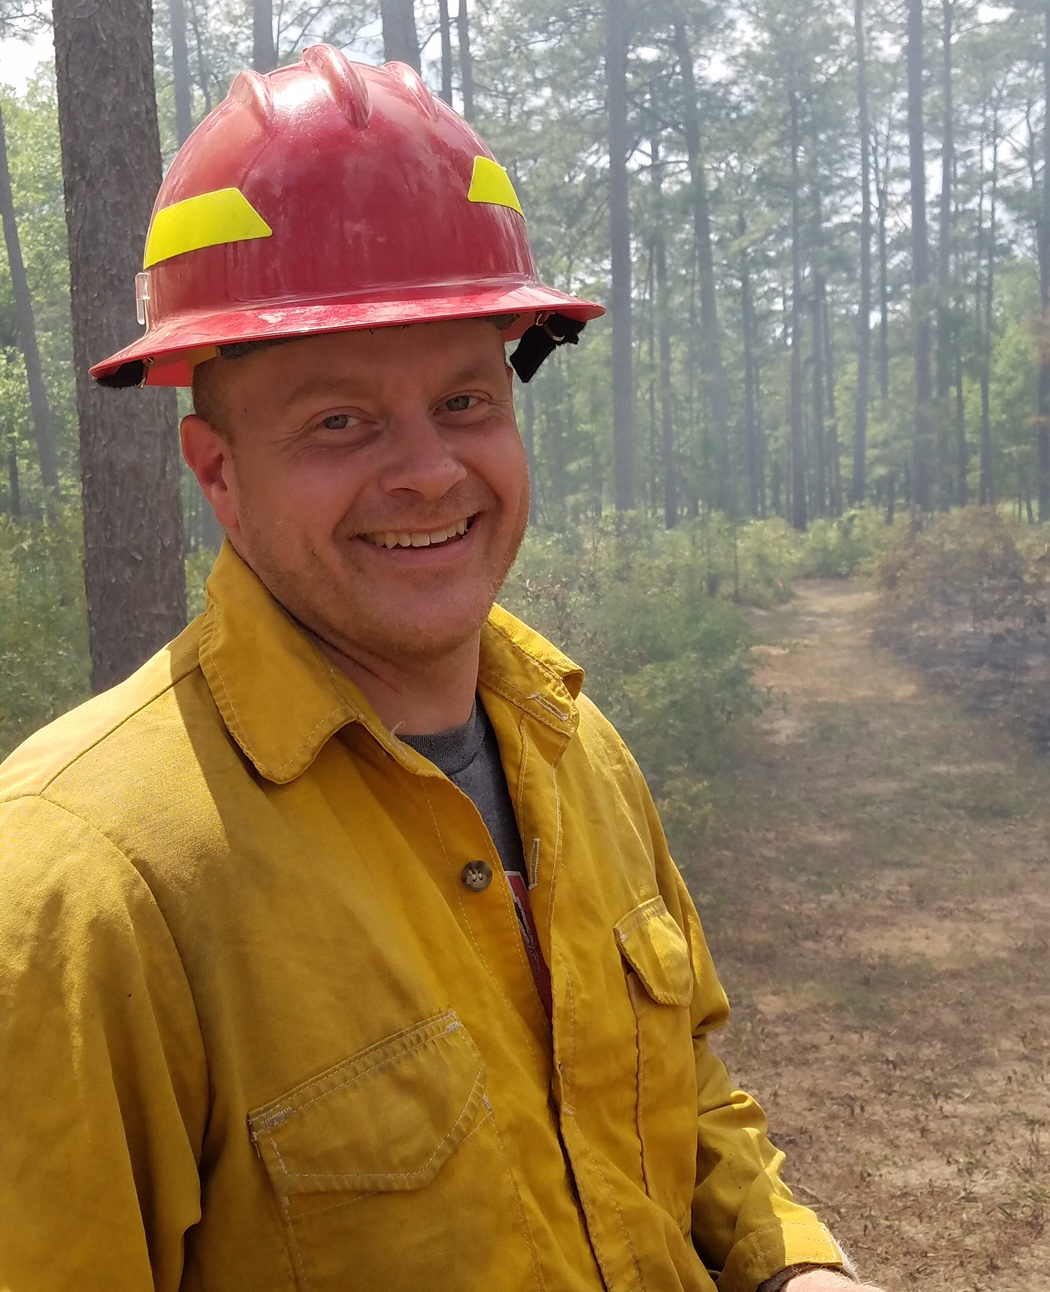 A photo of Nick Skowronski wearing a red firefighter helmet and yellow fire shirt.